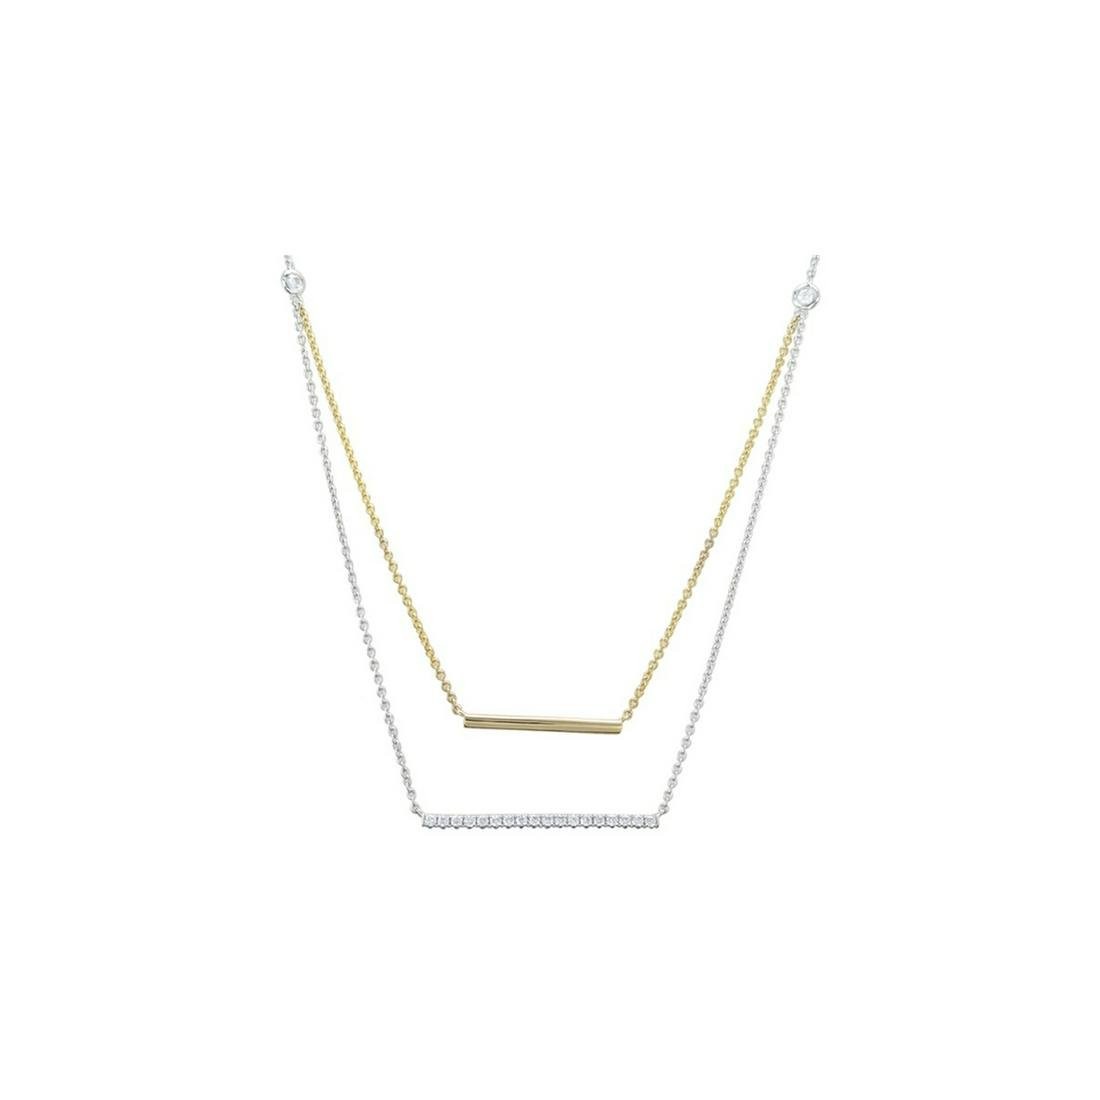 Certified 18k/14k Gold and Diamonds Necklace